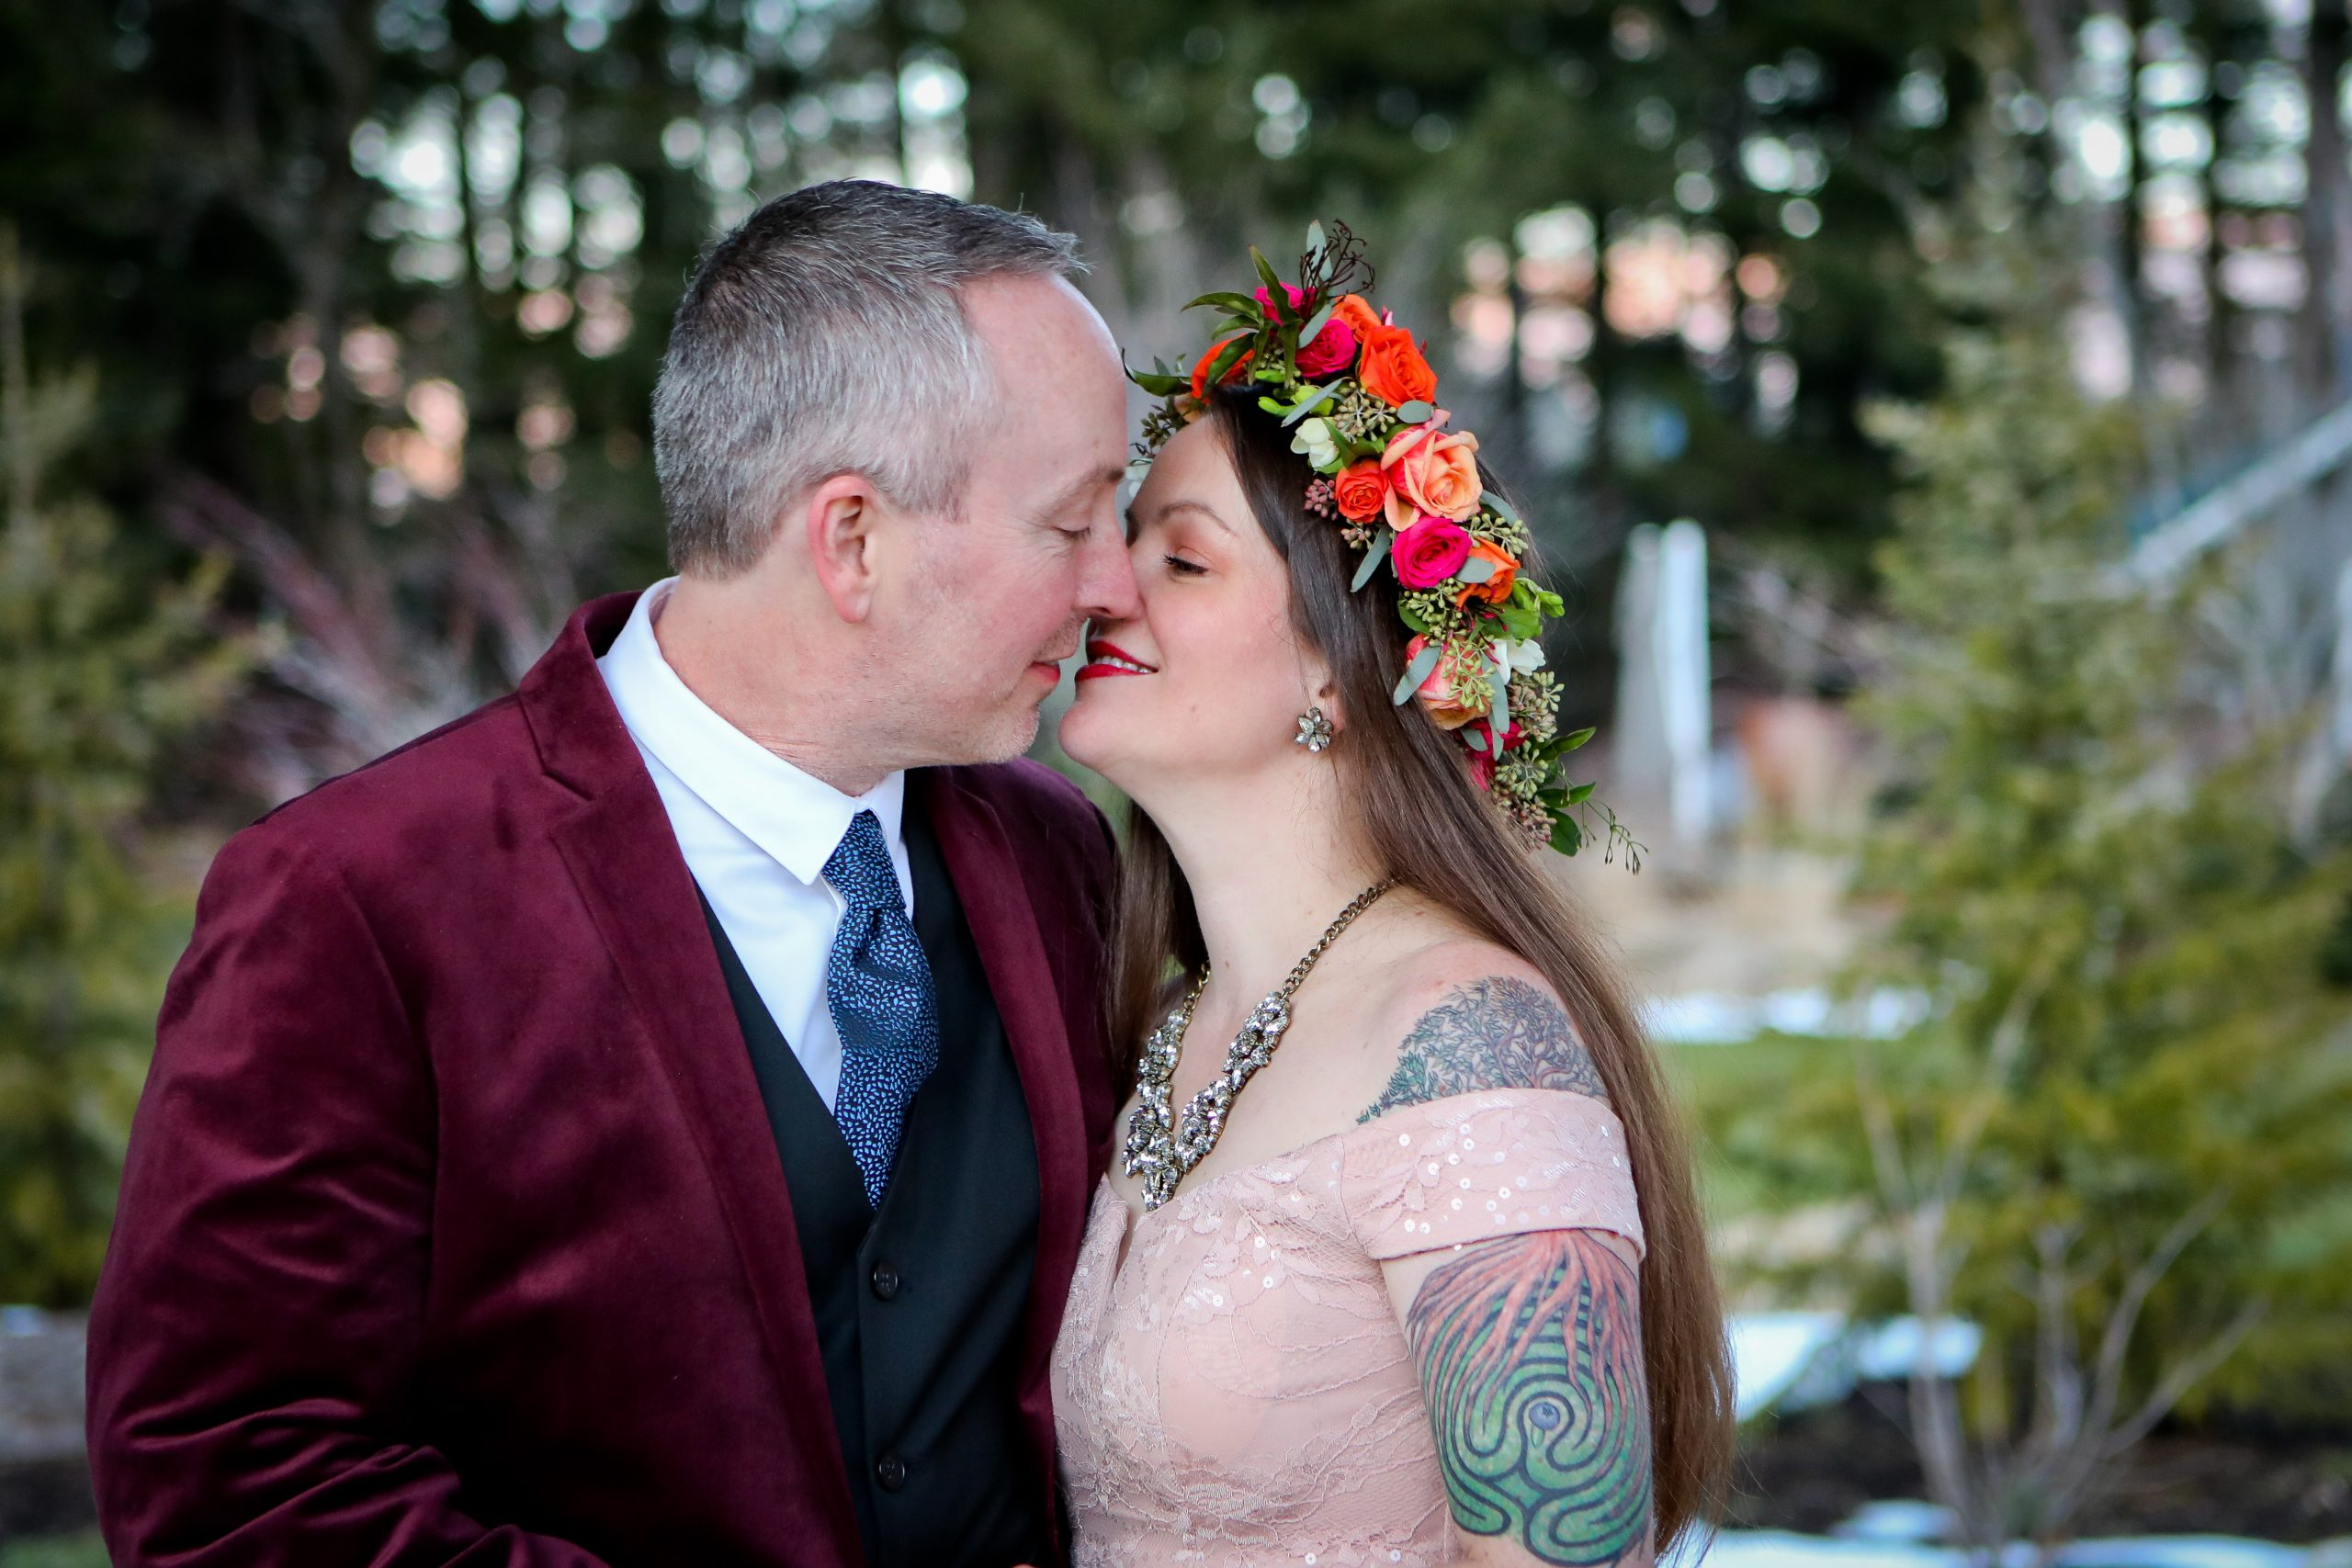 Love & Grief, and the Art of Winter Weddings